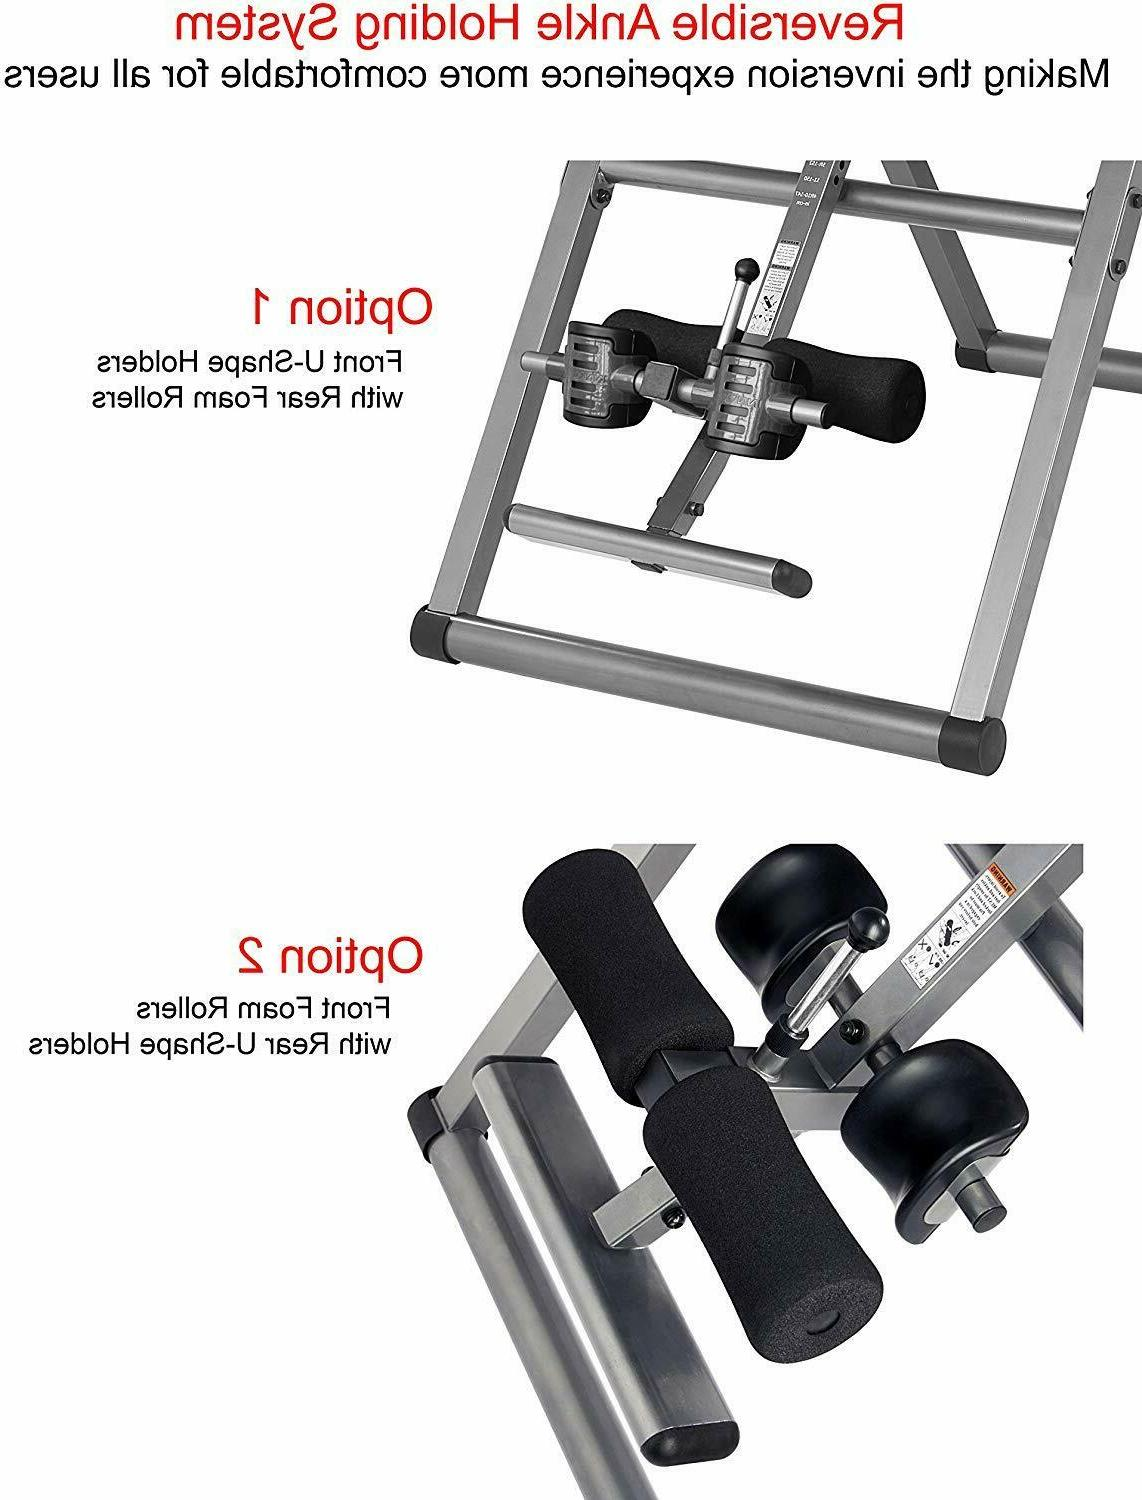 Inversion table 300lb-max Home Exercise Health